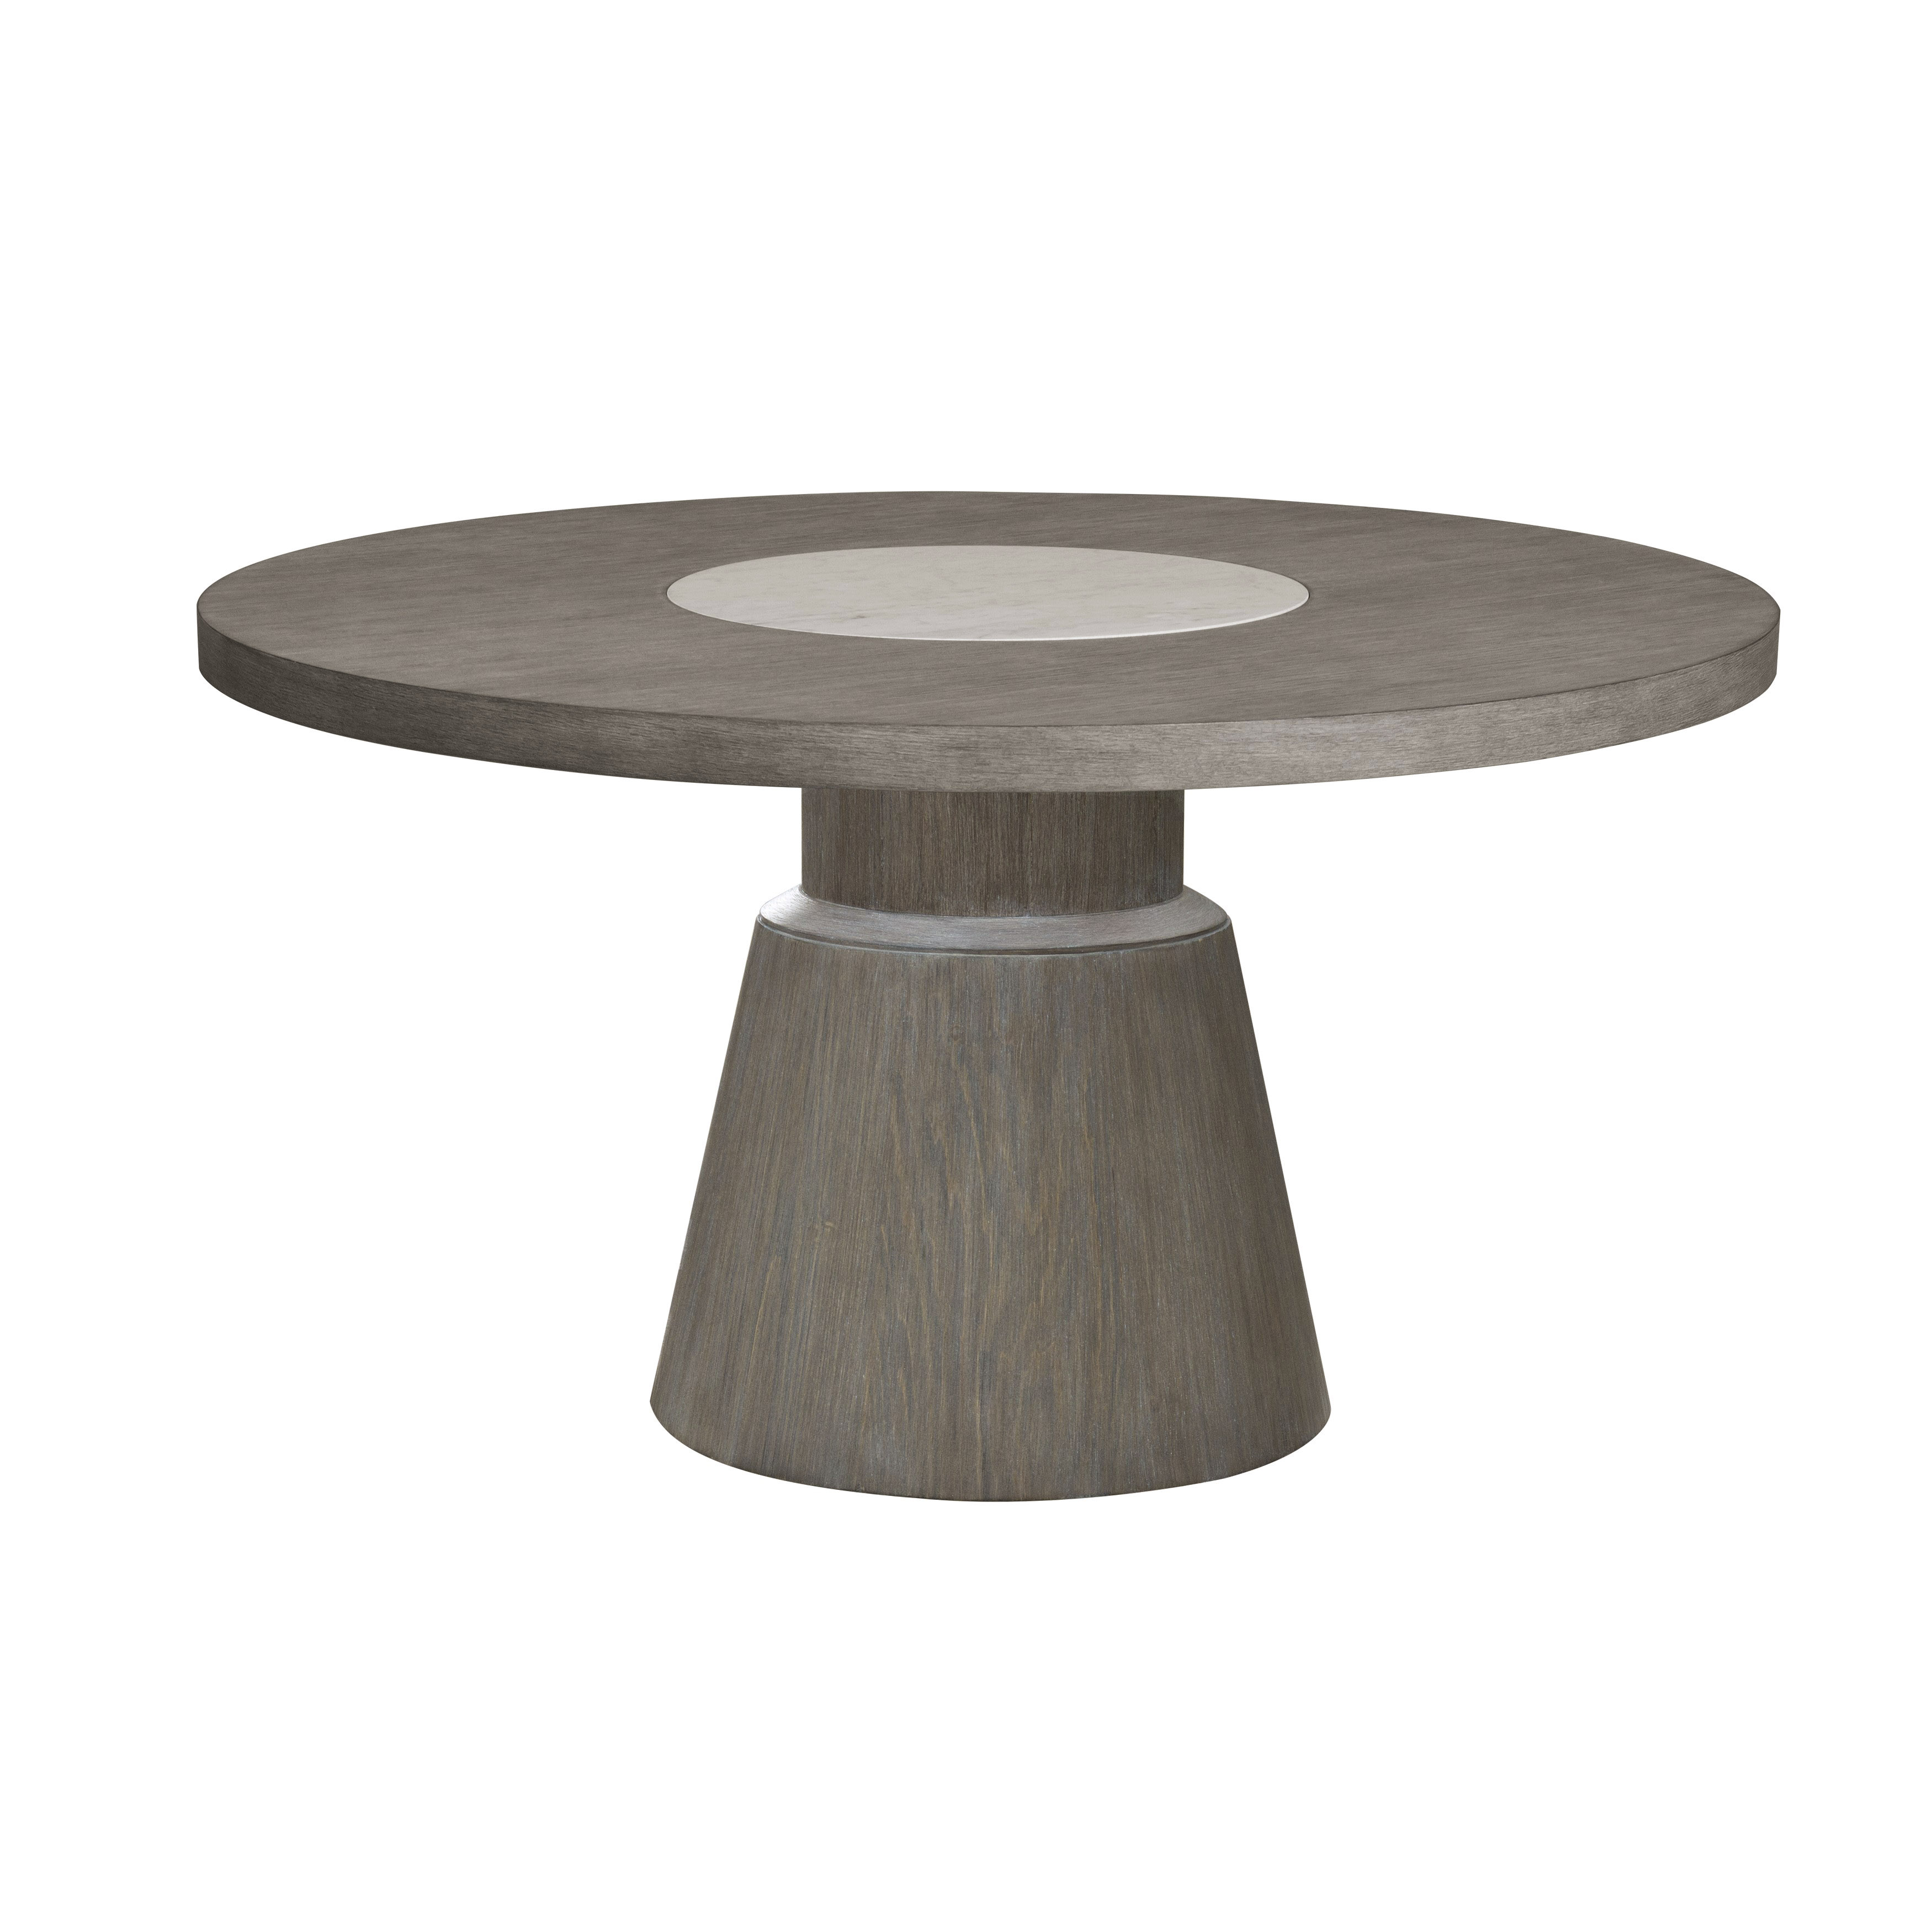 Home Meridian Modern Natural Taupe Marble Insert Round Dining Table